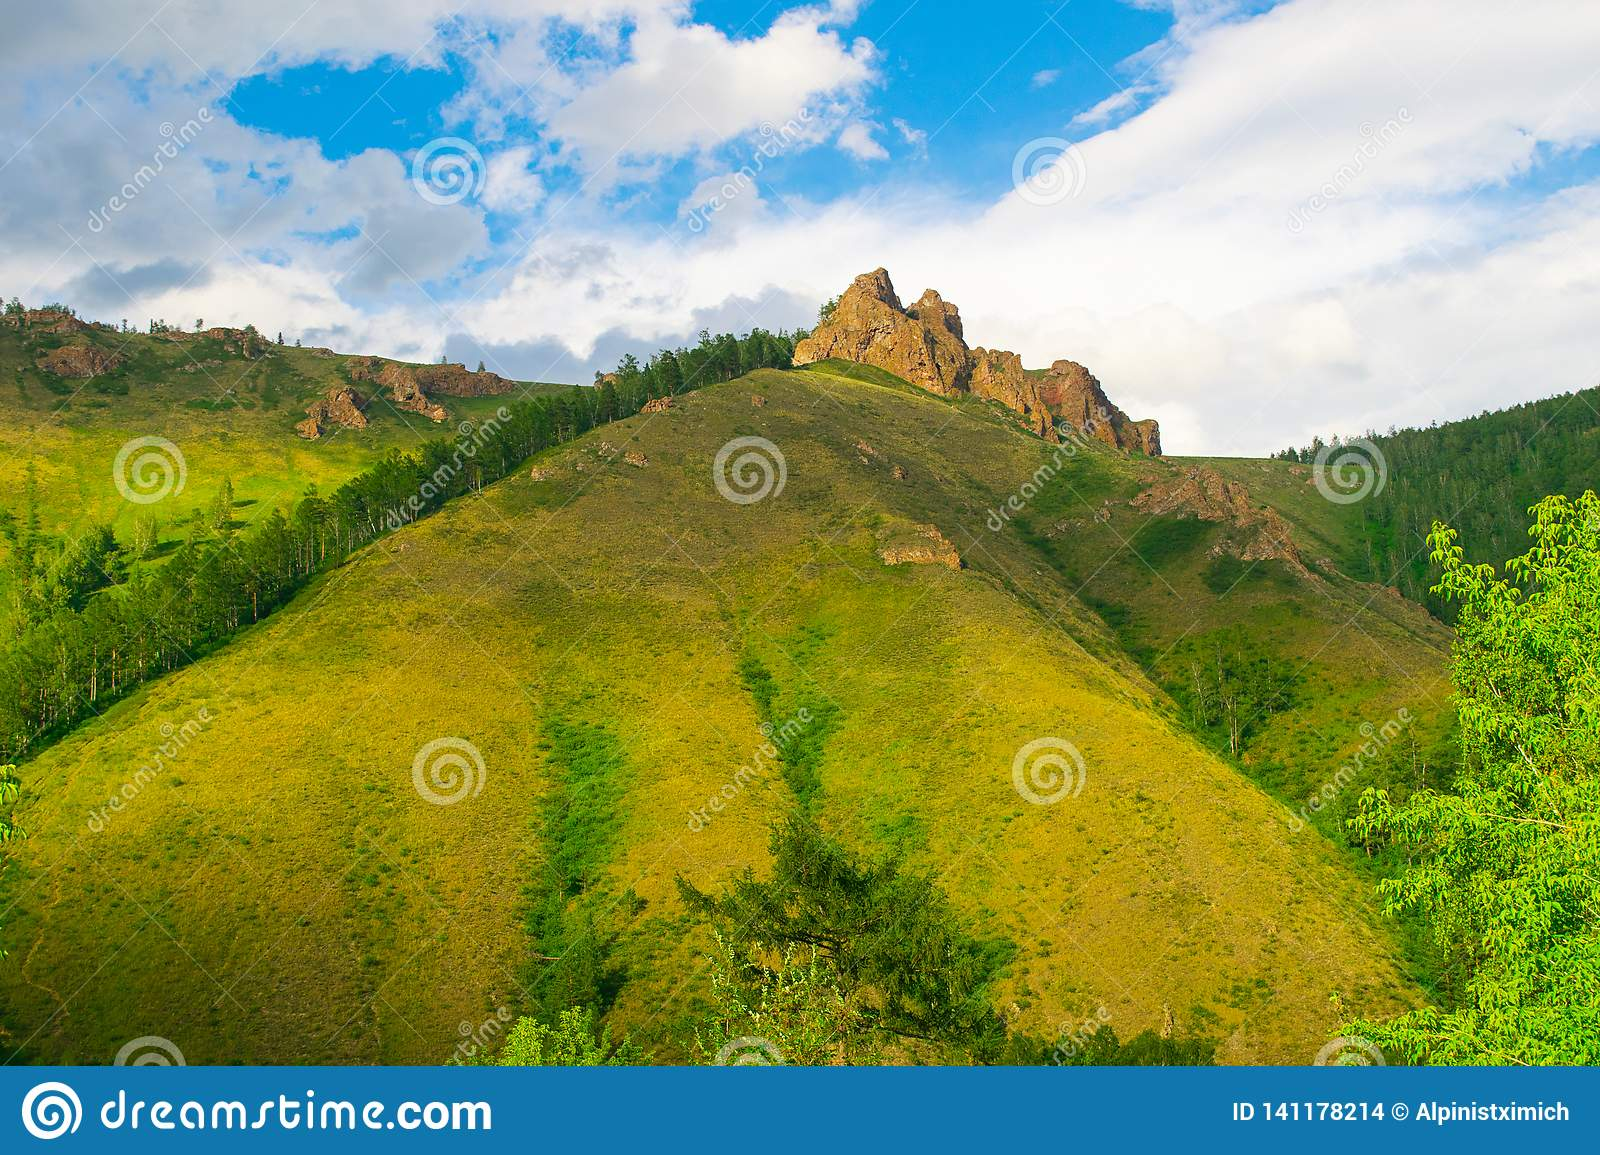 Summer landscape high hill with large stones and blue sky with air clouds. Russia Siberia.